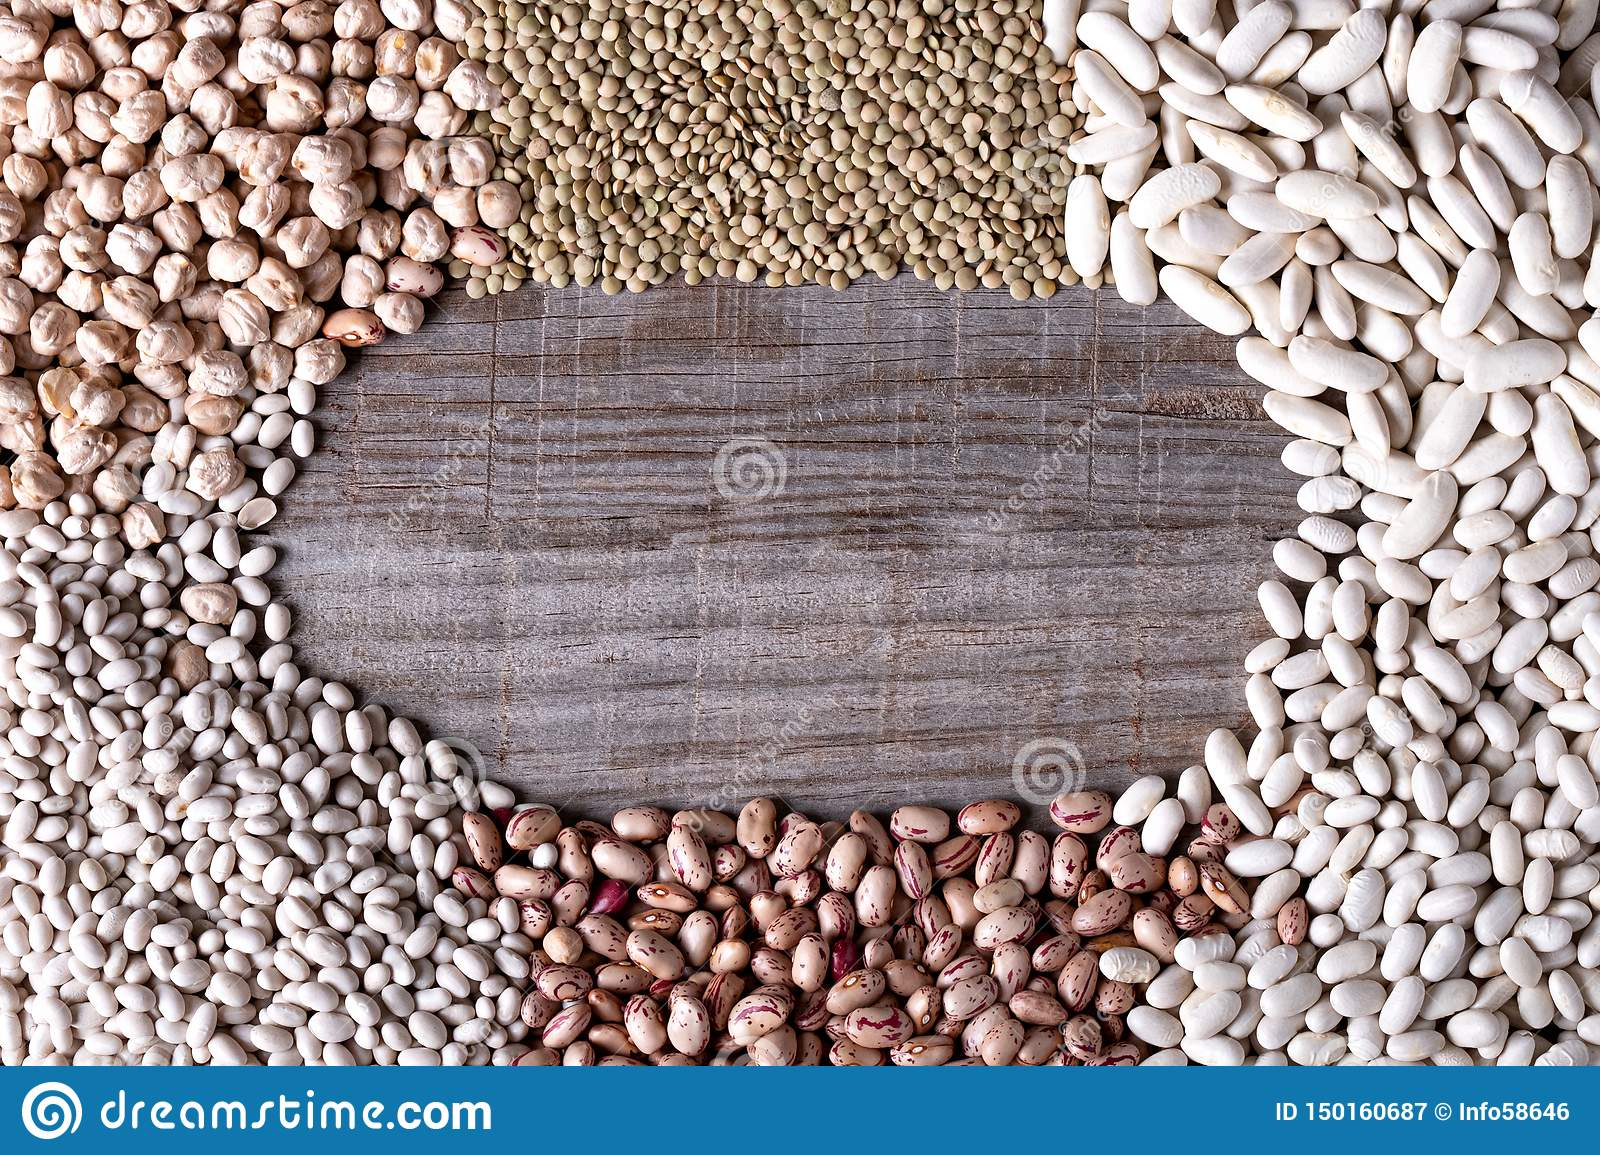 Background of distant legumes forming a circle on wooden board